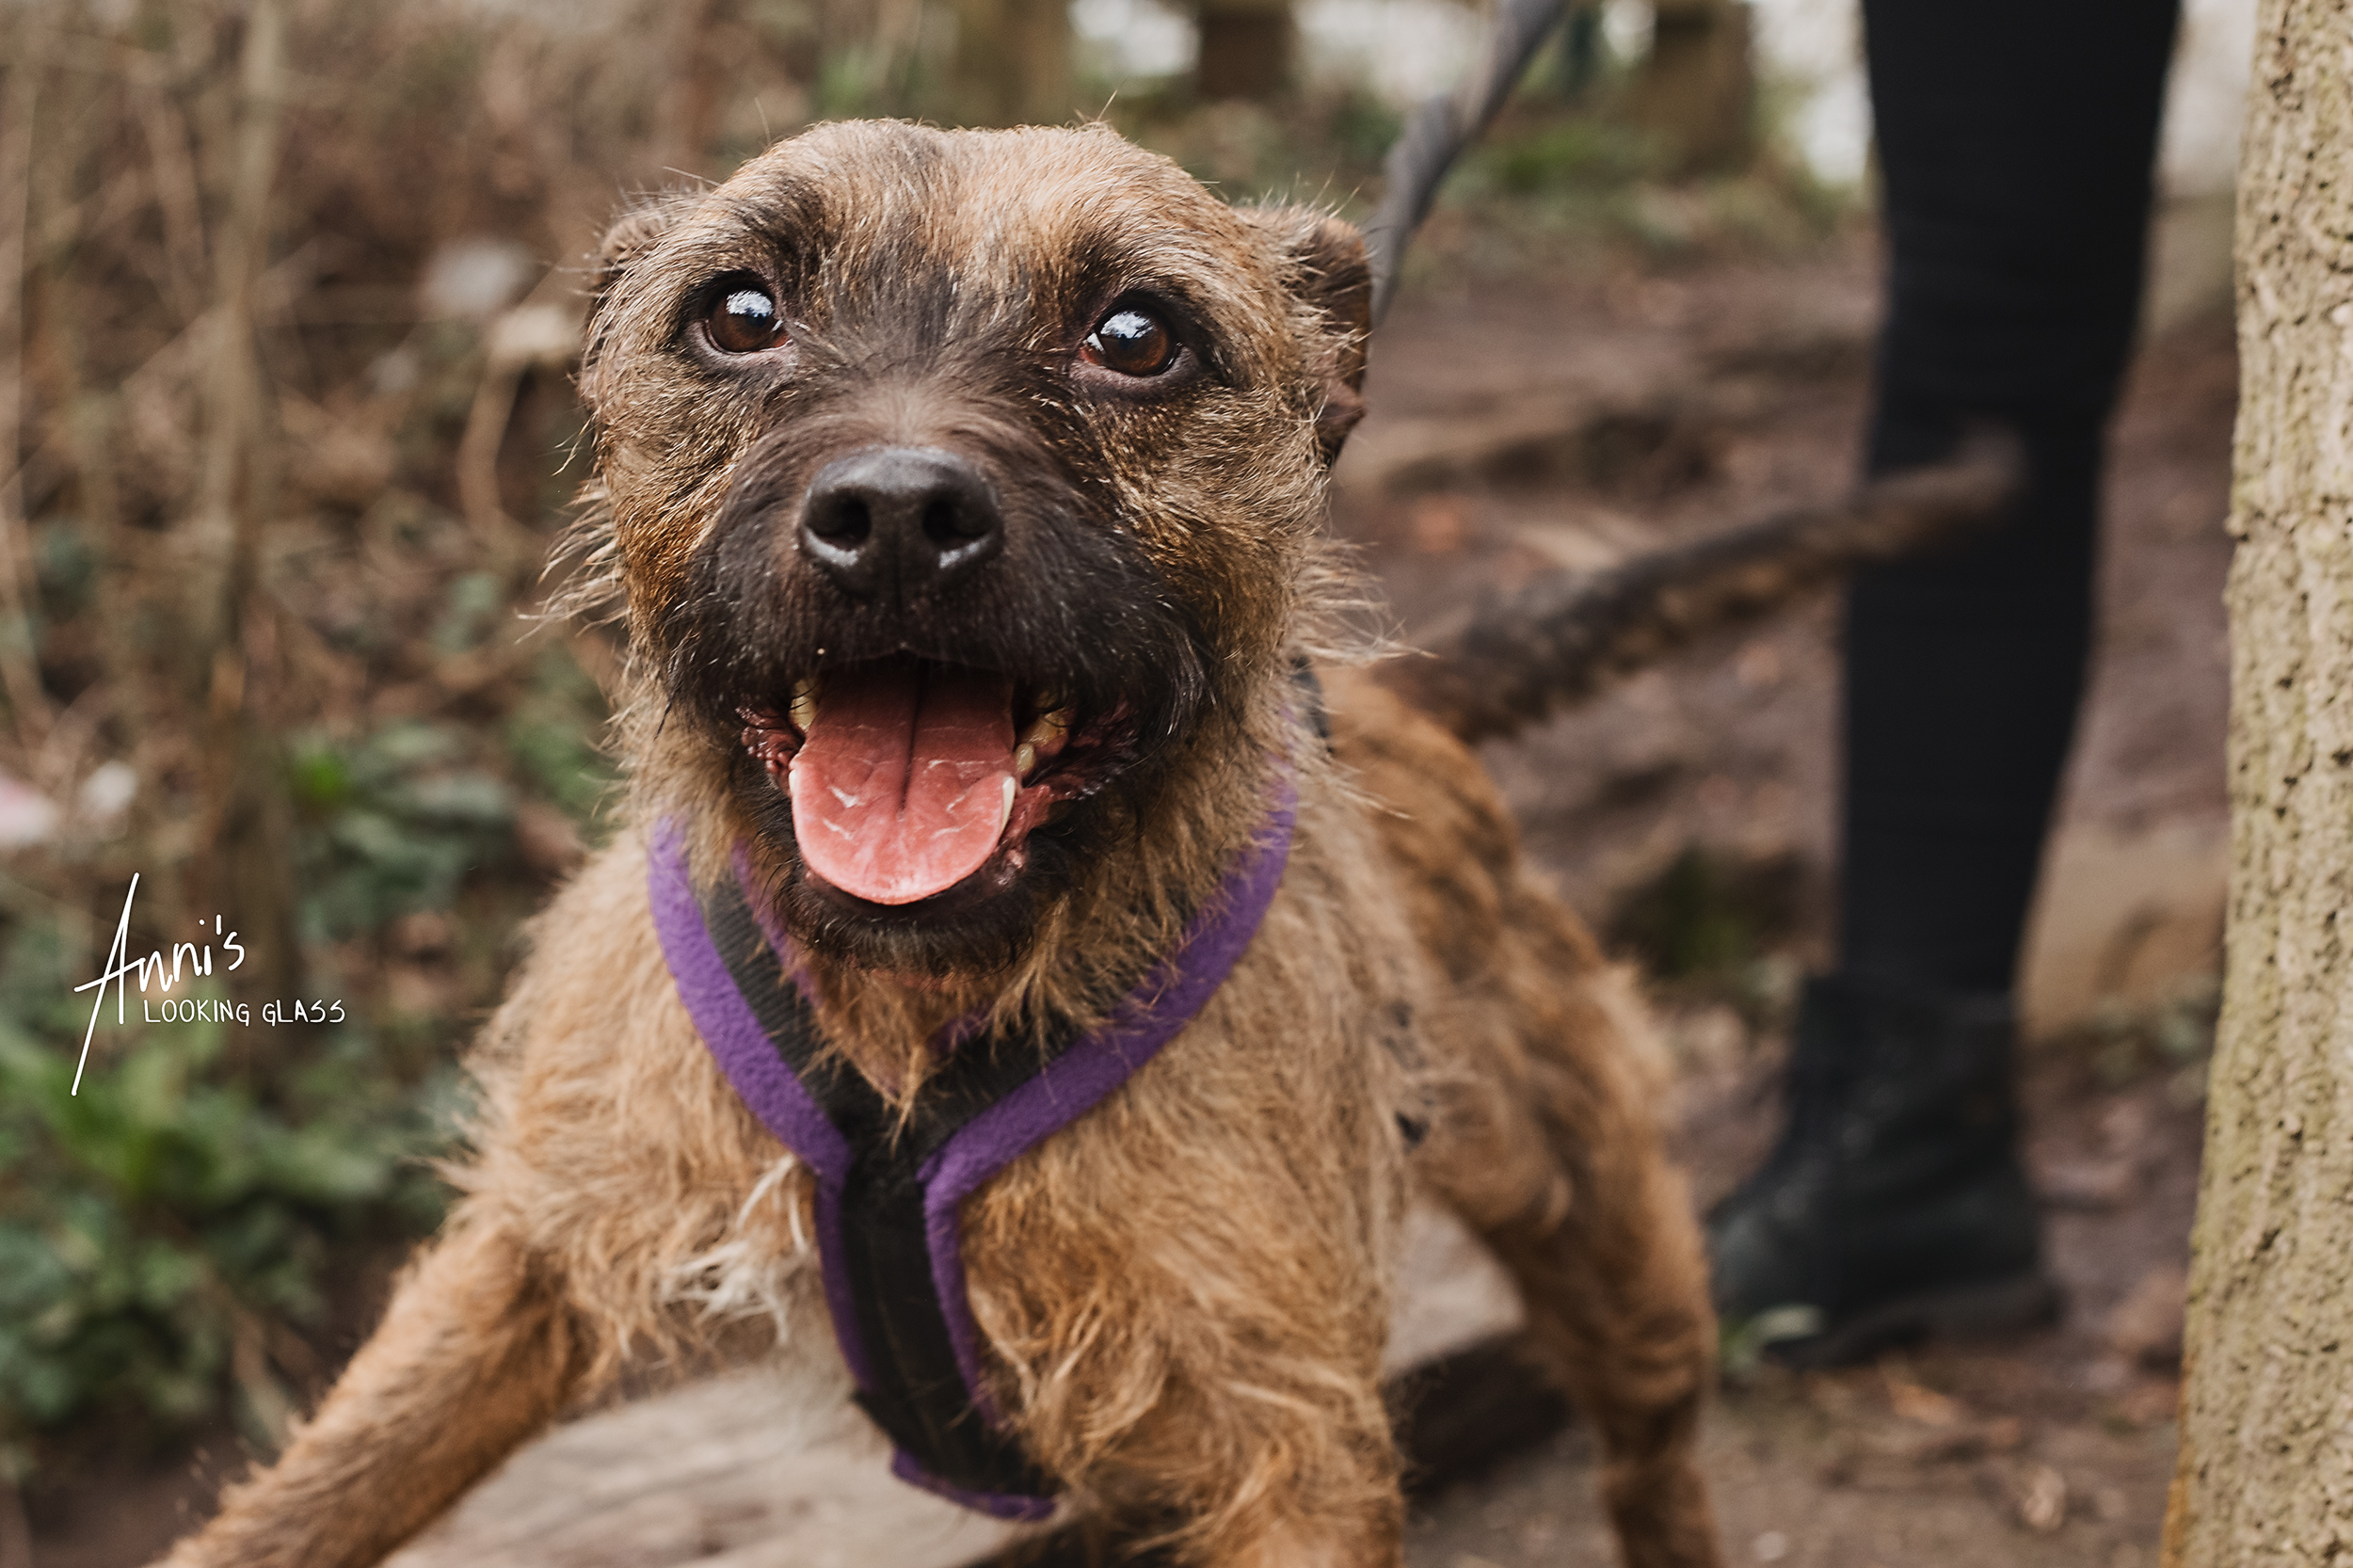 Dog photographer in Loughborough | A border terrier cross in a woodland near Hathern, Leicestershire | 6th March, 2018